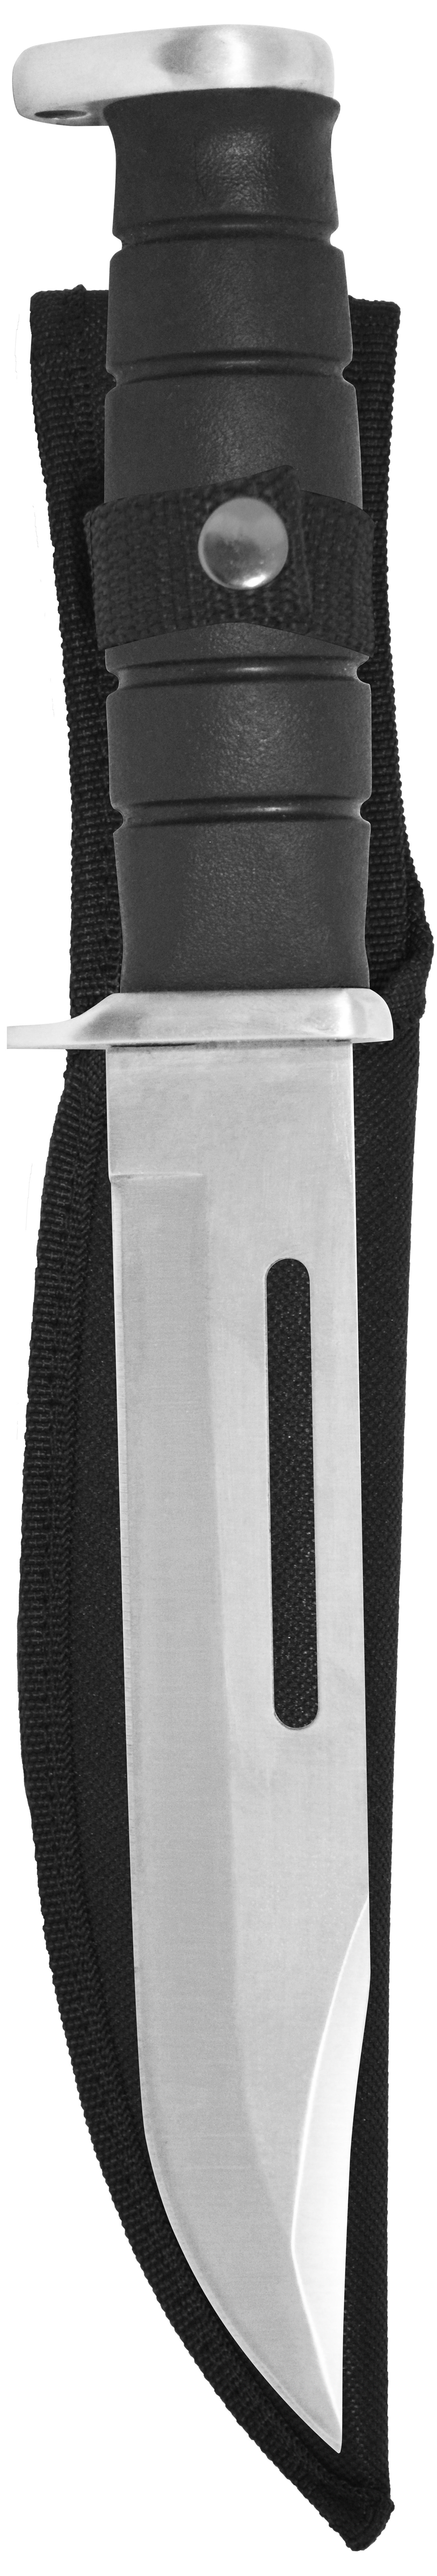 Knife 14087 Bowie Knife, 7-Inch Stainless Steel Blade, Rubber Grip, Nylon Sheath